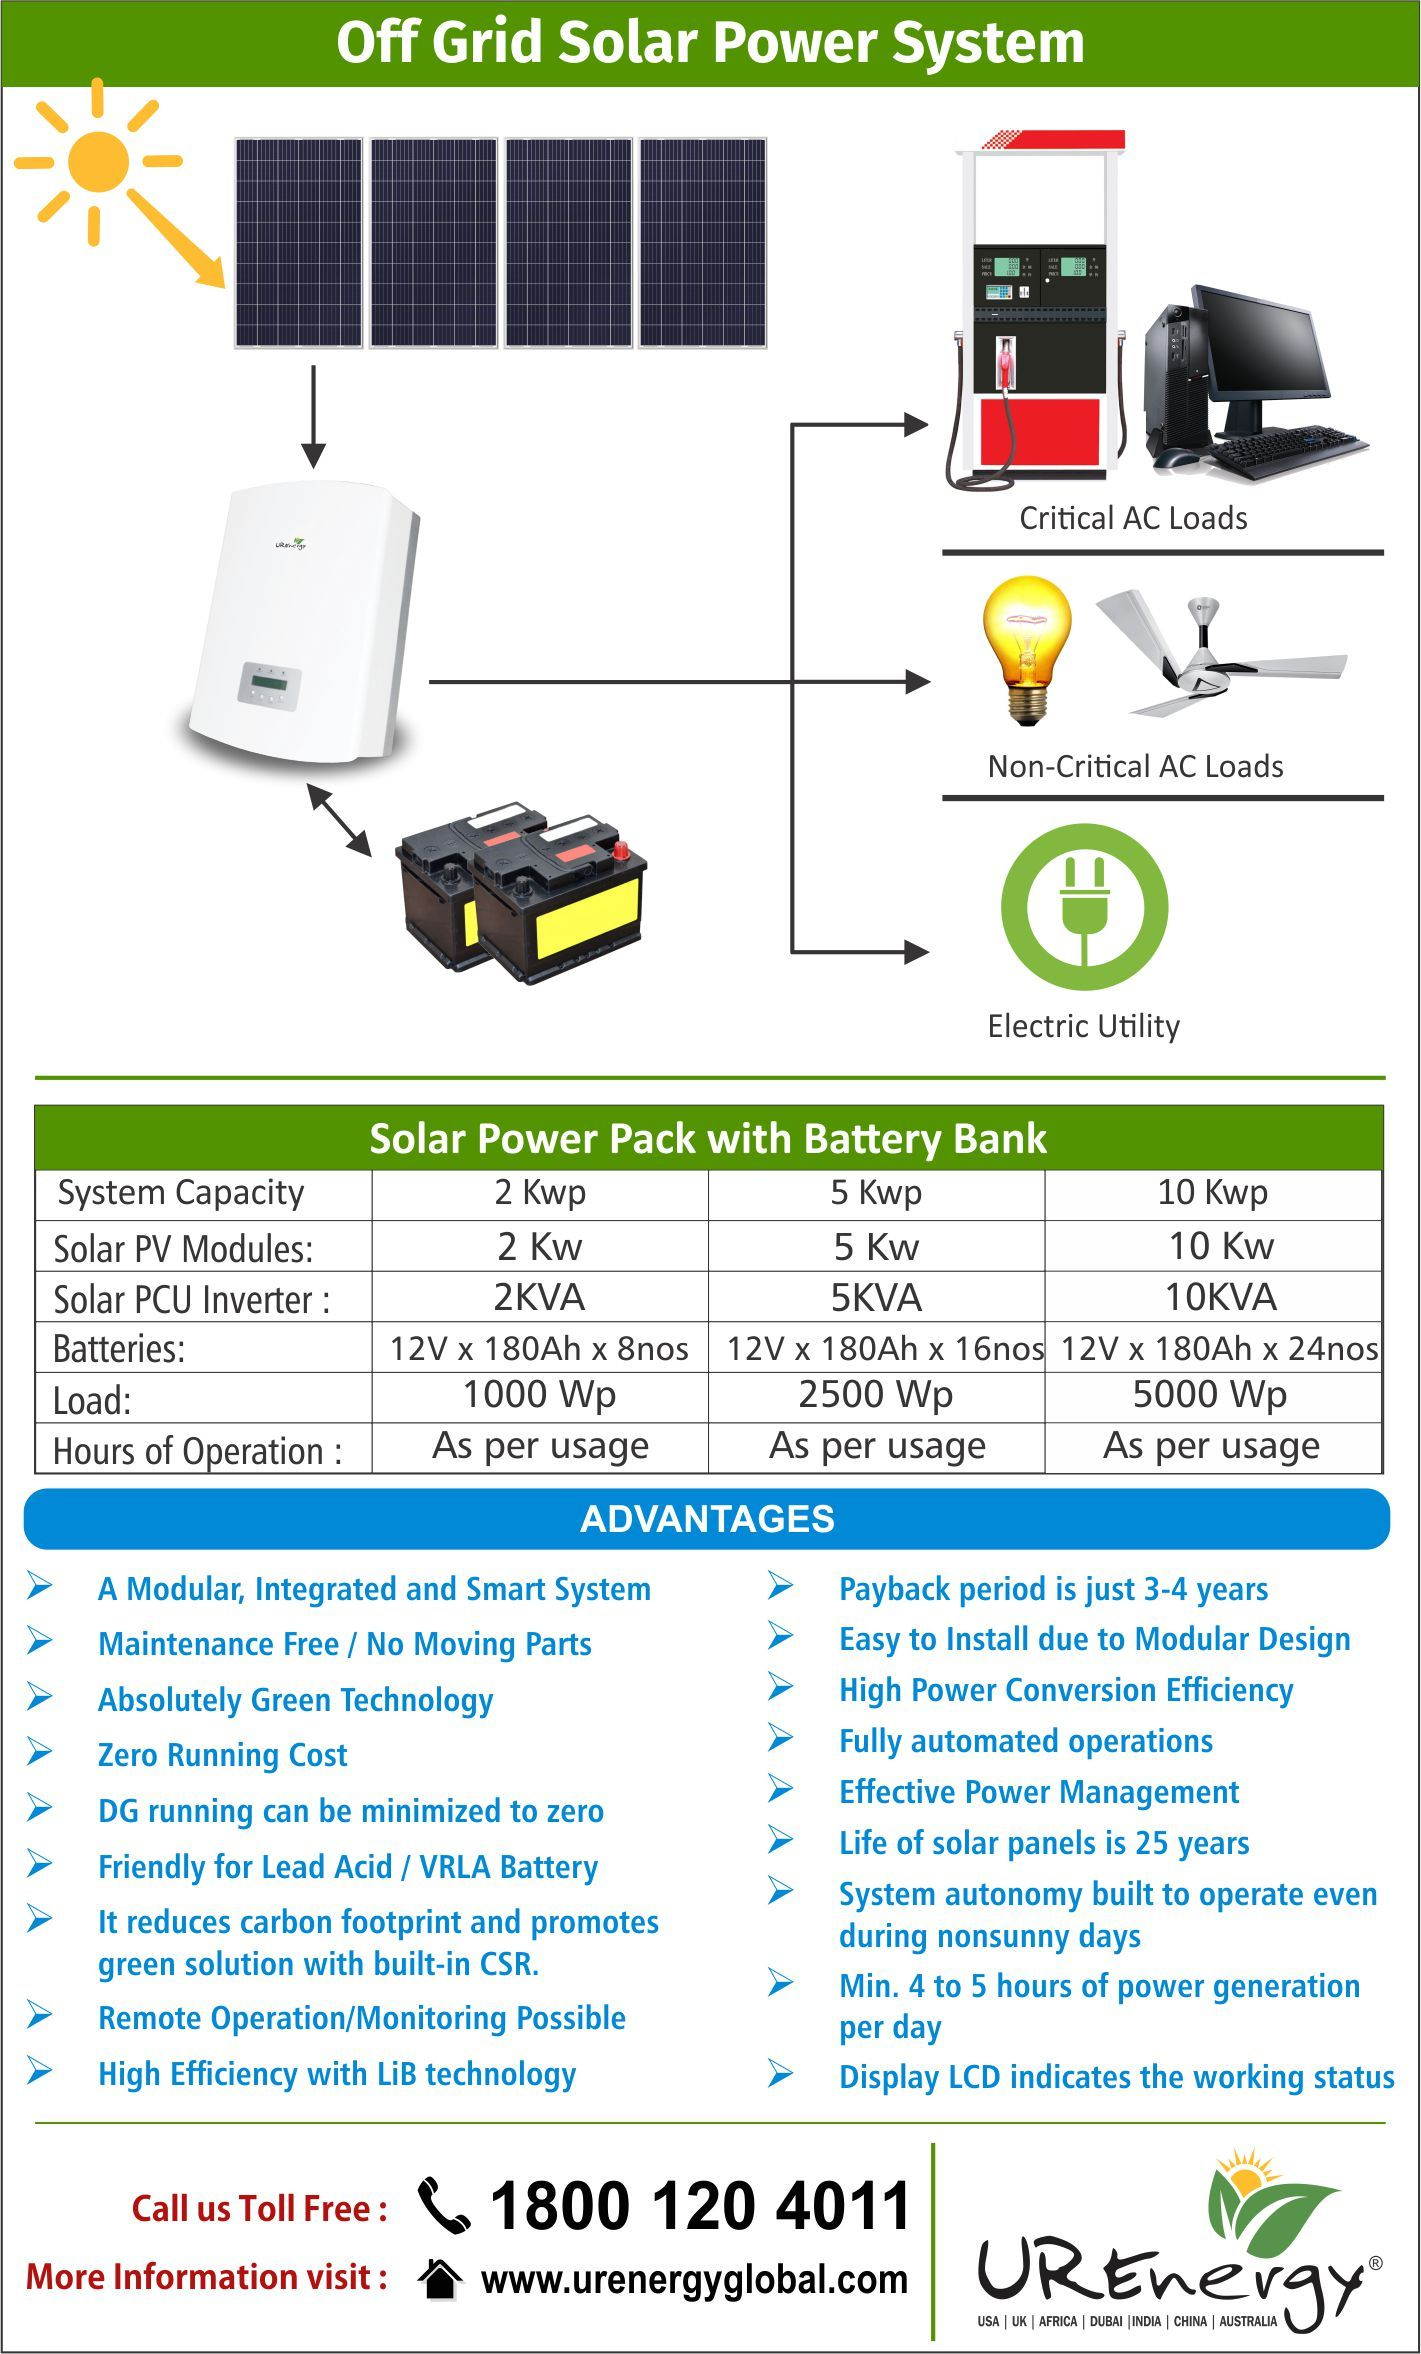 Rooftop Solar Panel Inverters Water Pump Solar Epc Gujarat India U R Energy Solar Power Solar Heating Solar Power System